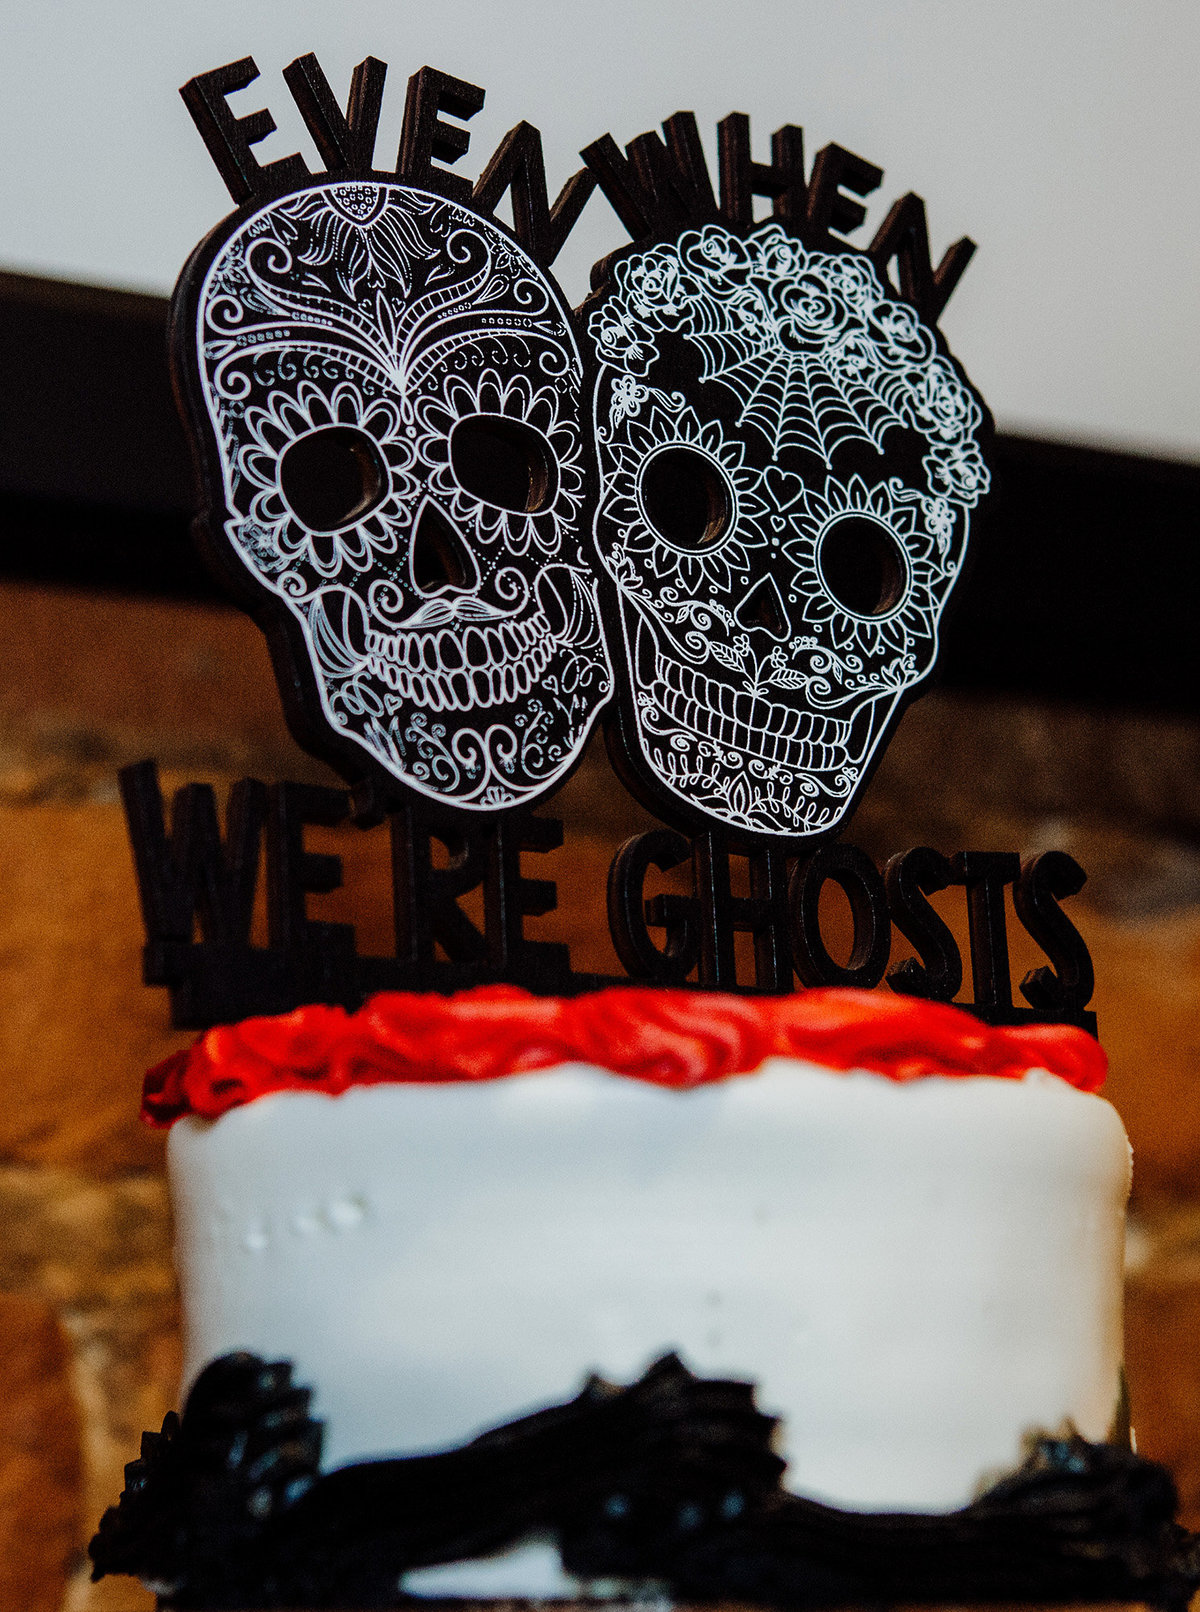 even-when-were-ghosts-cake-topper